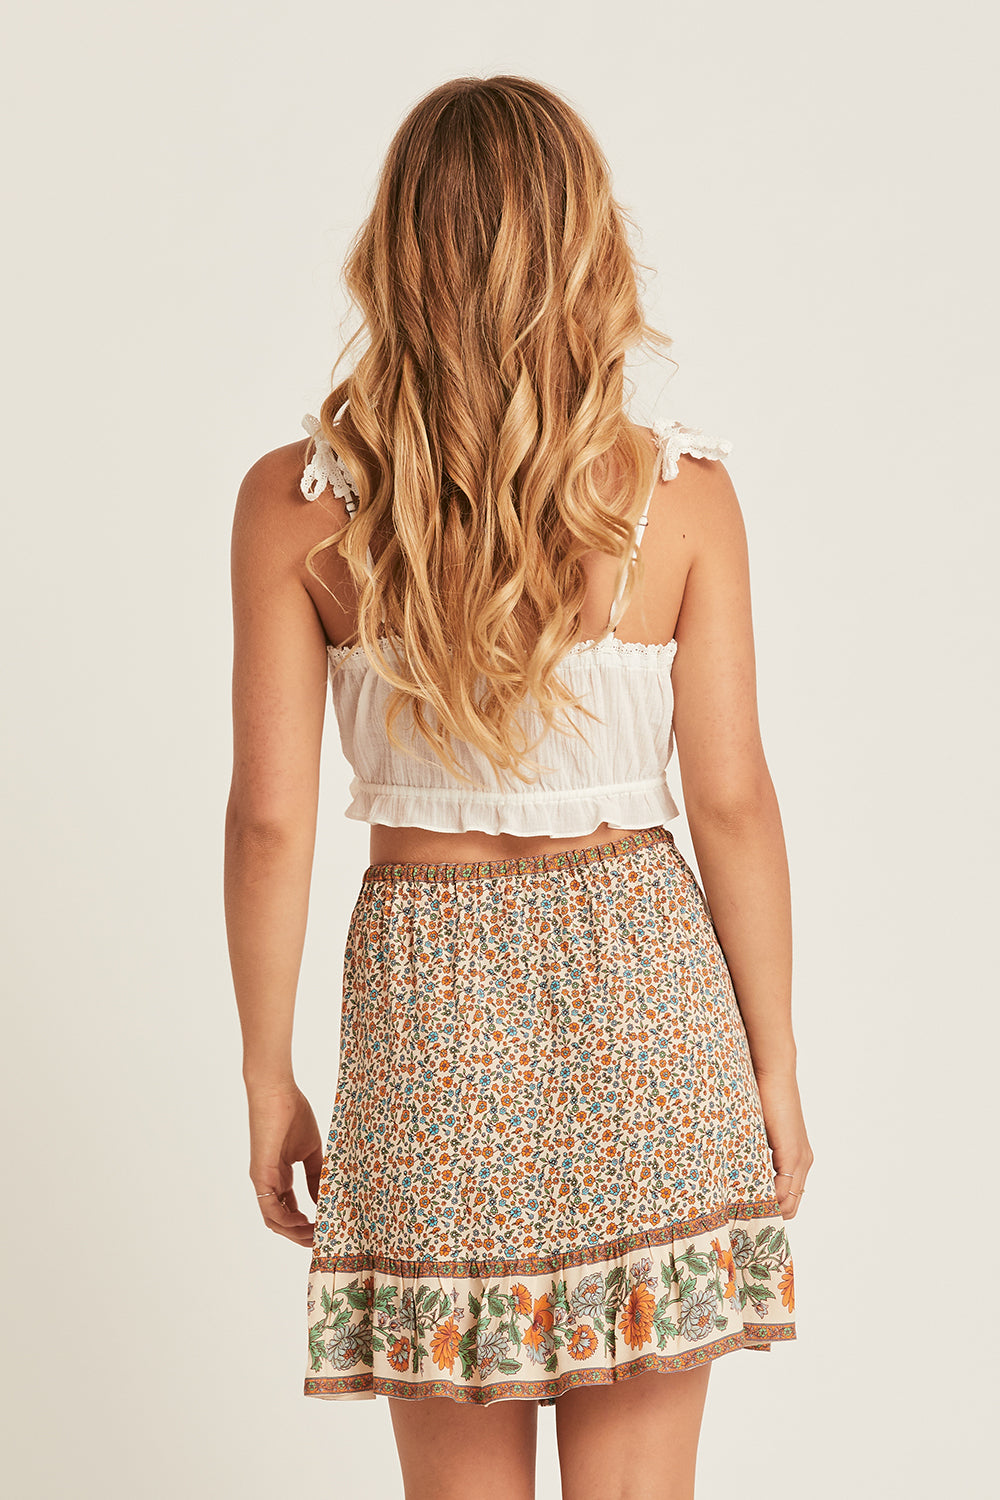 Ophelia Mini Skirt in Tango